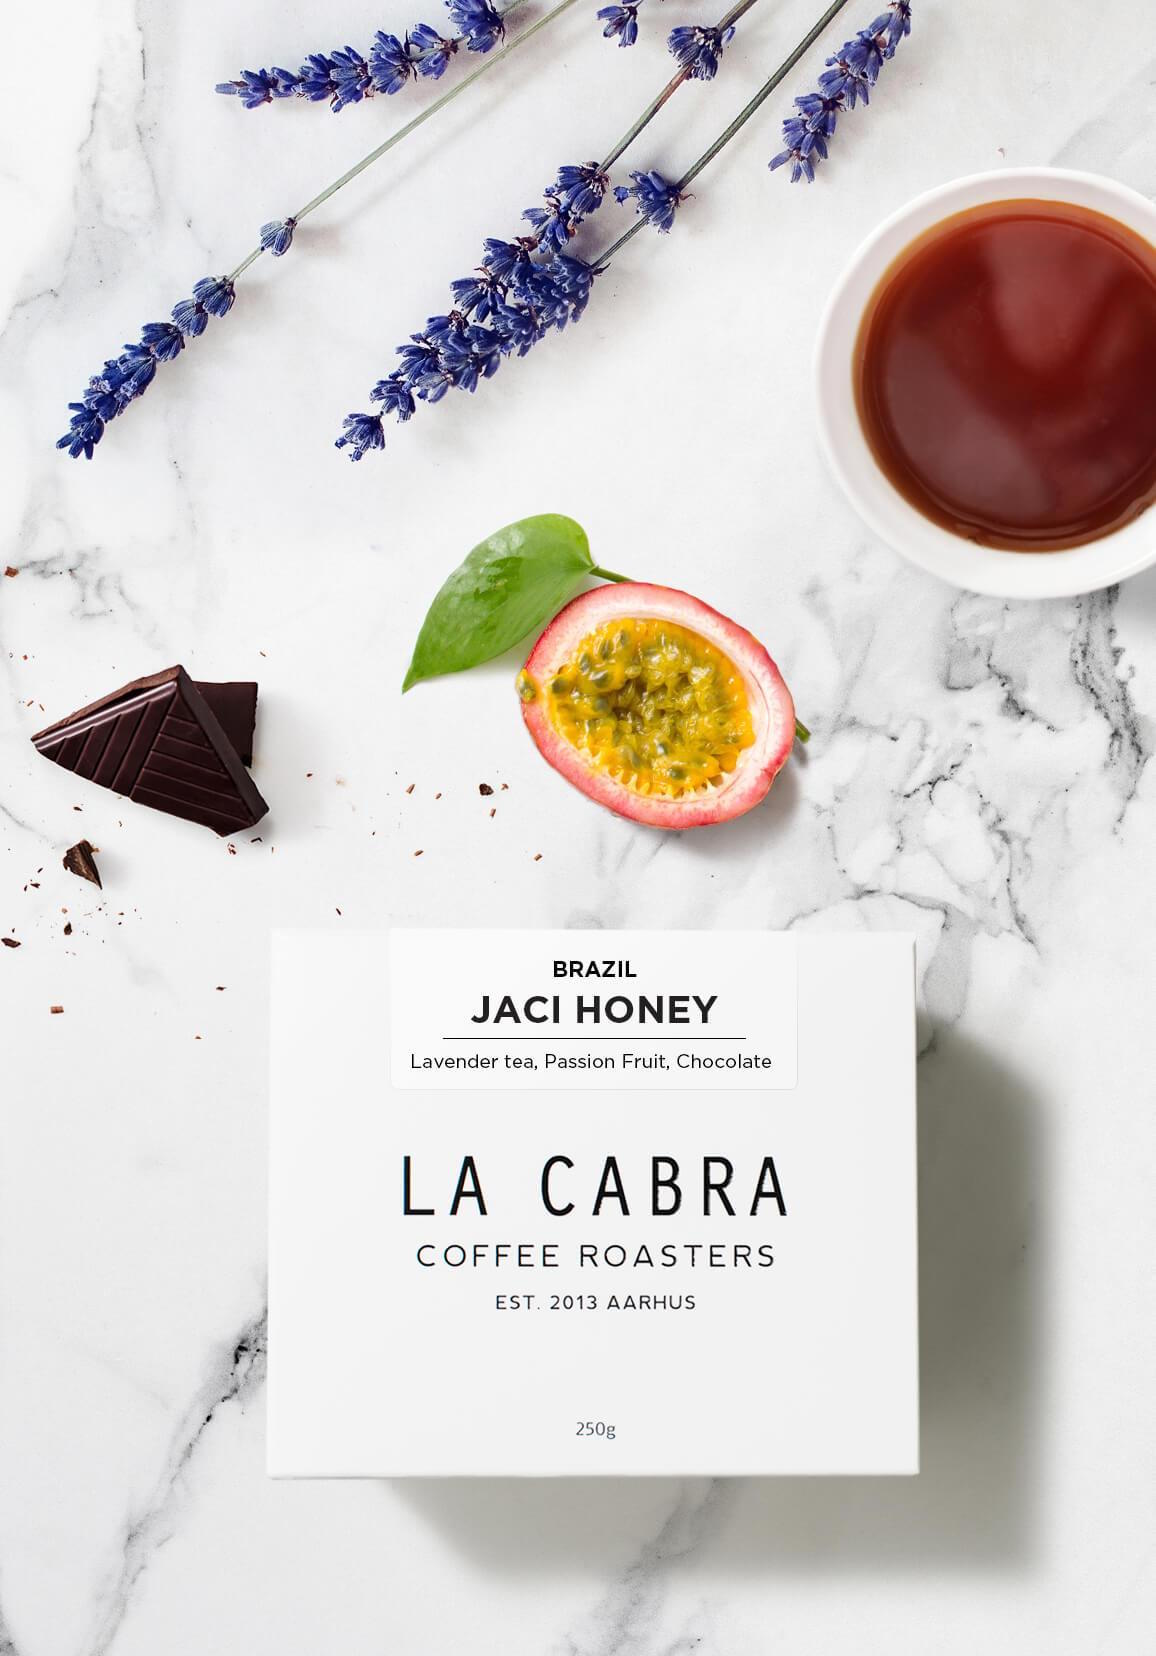 La Cabra coffee roasters